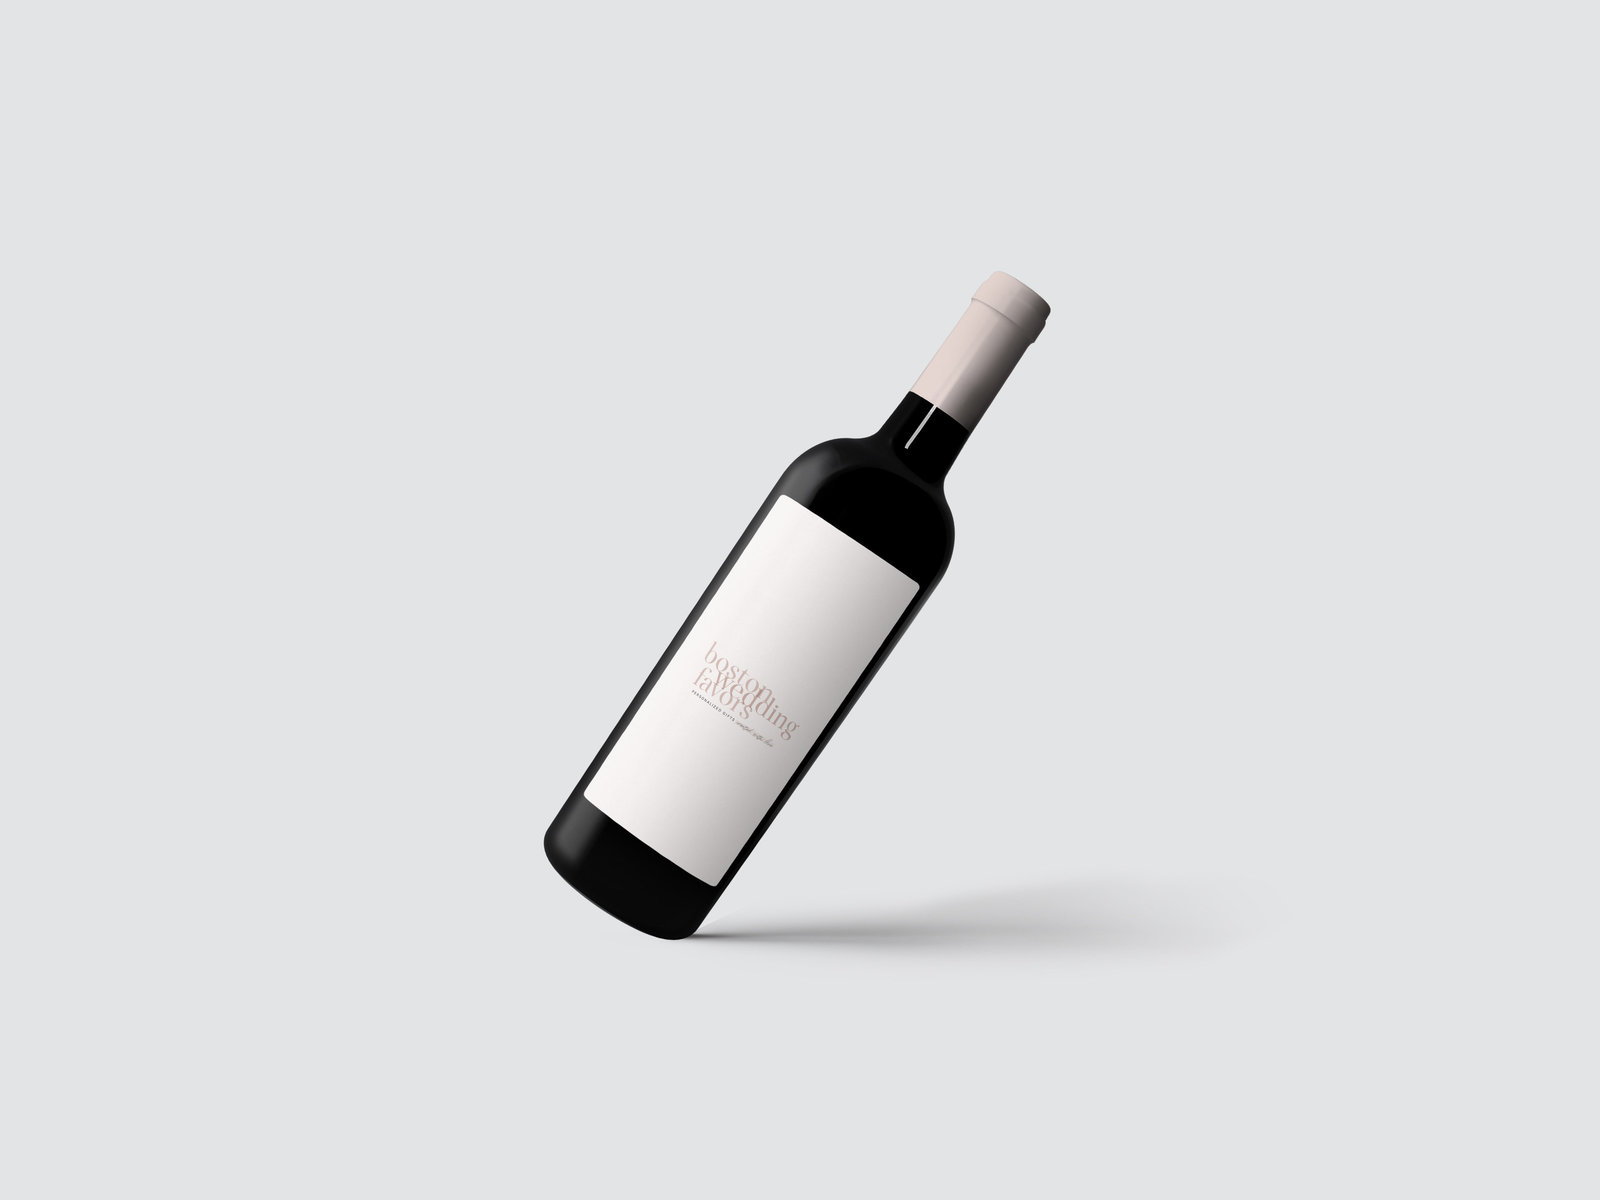 Wine Bottle Mockup 3